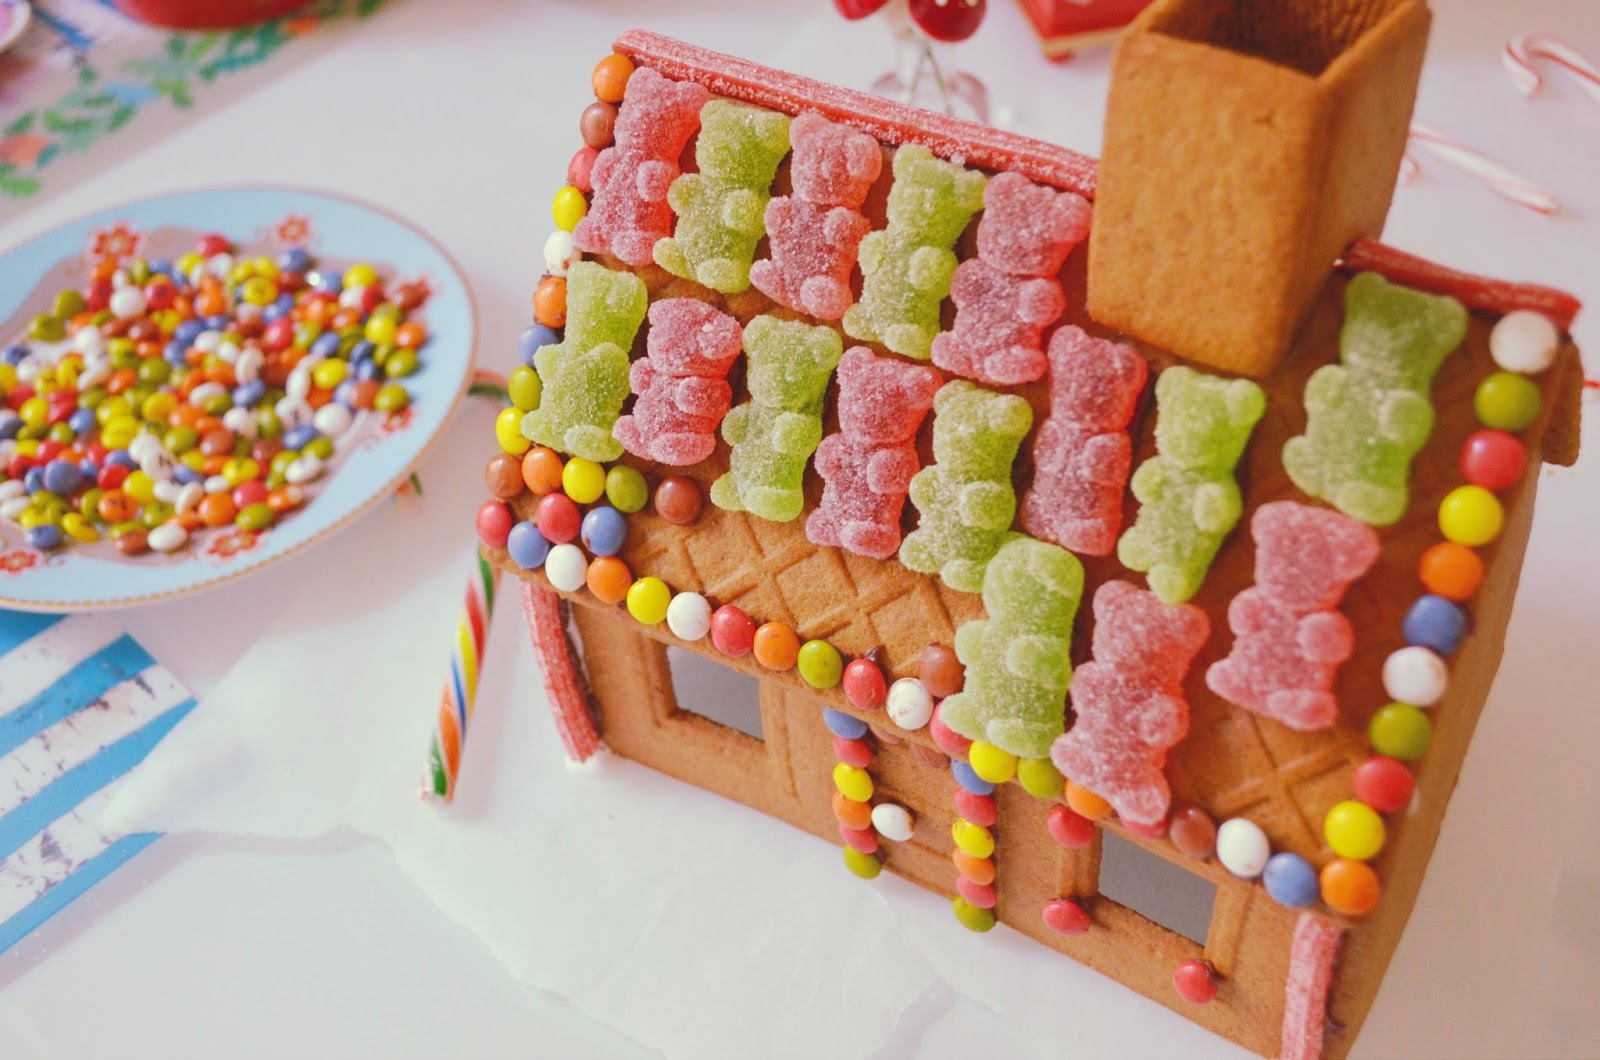 Chic christmas chic food diy gingerbread house piensa - Casa de jengibre ikea ...